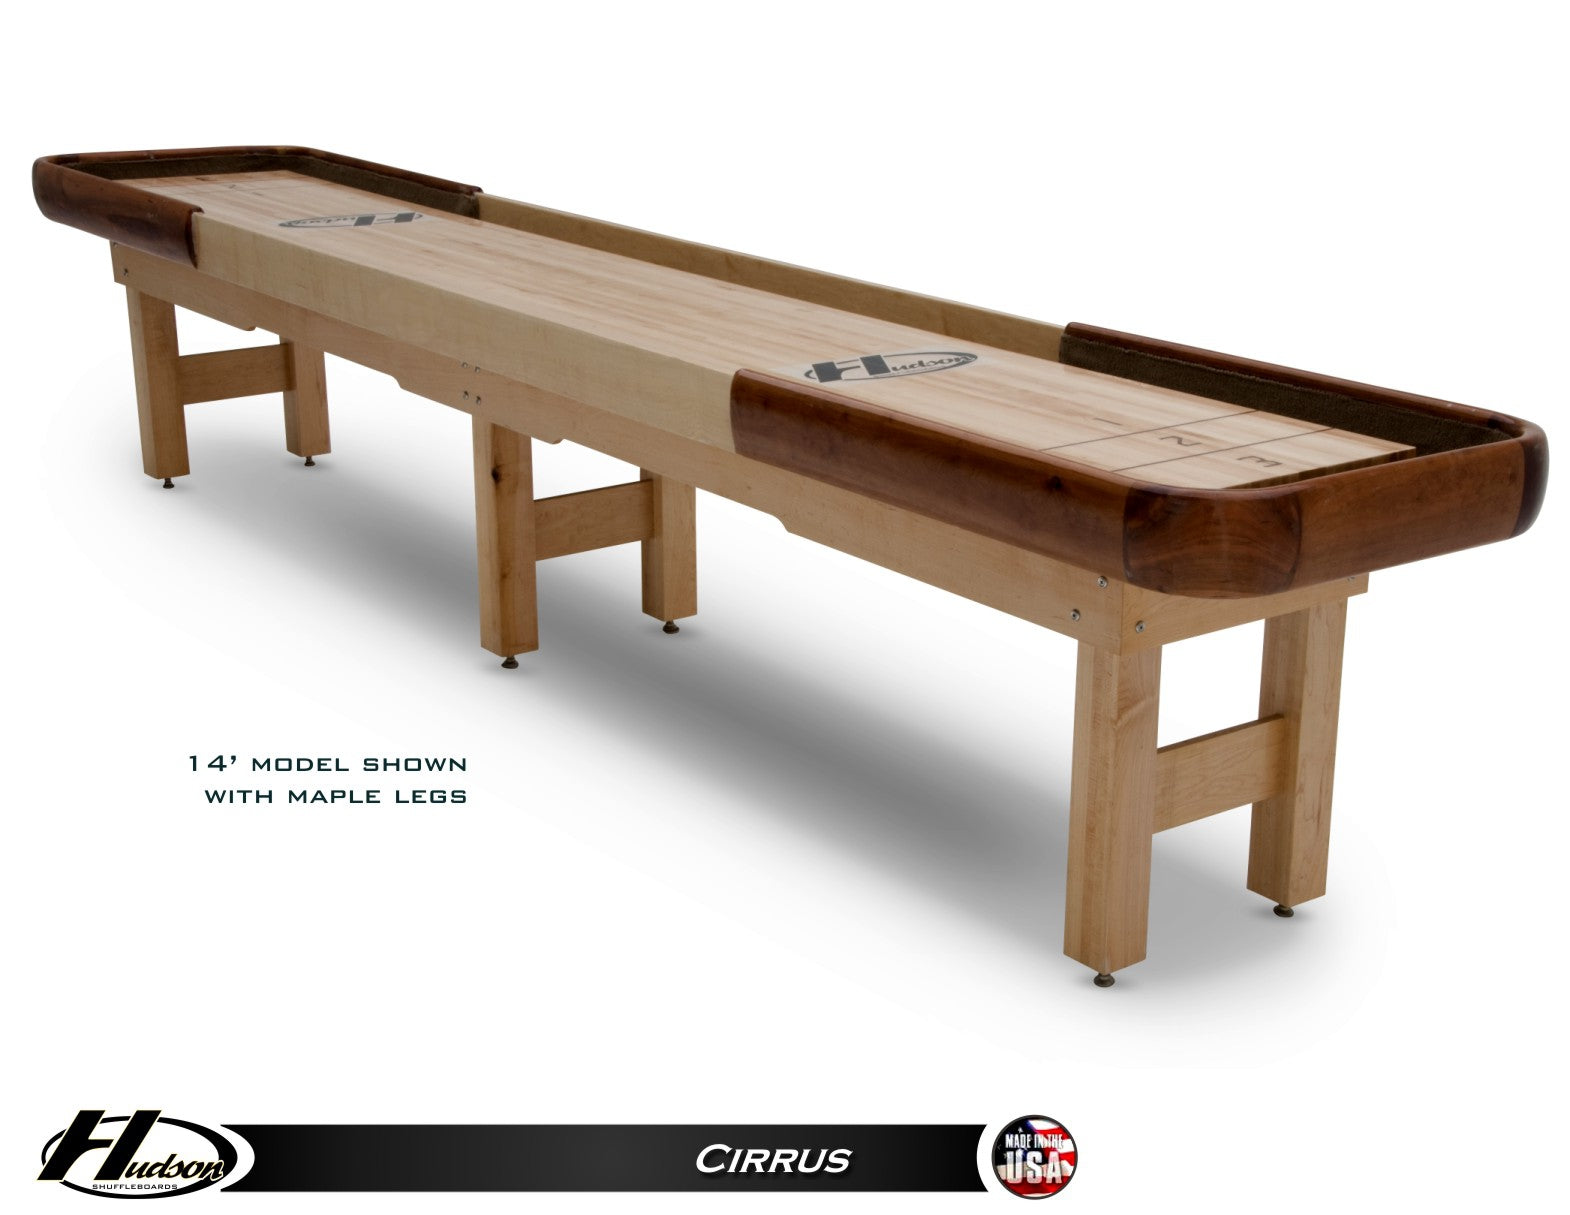 Cirrus Outdoor Shuffleboard Table